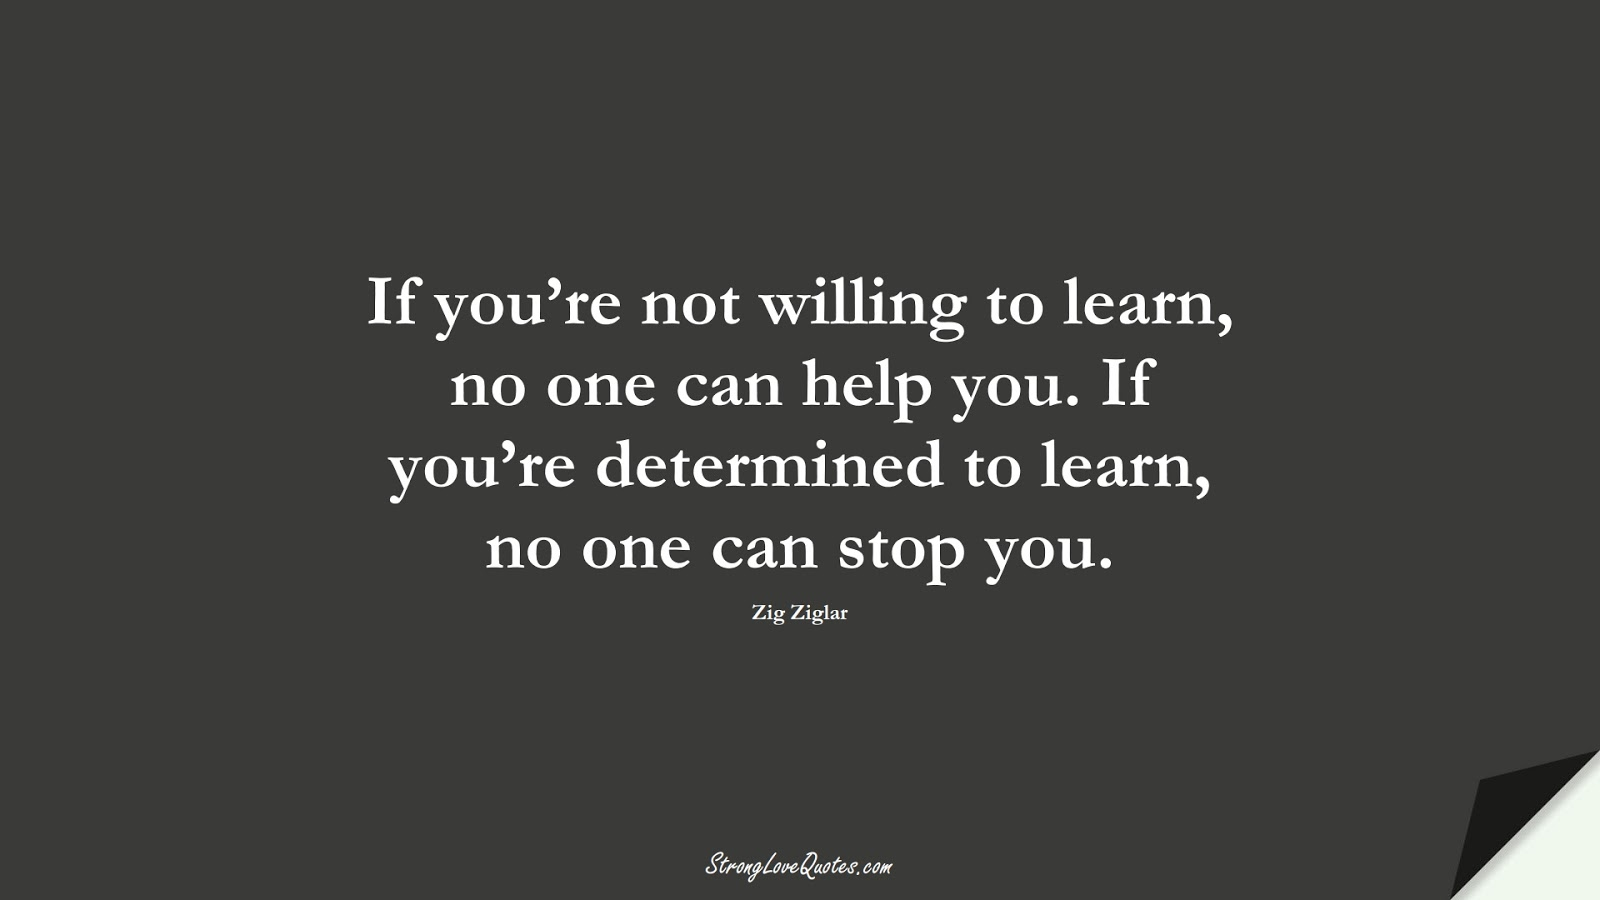 If you're not willing to learn, no one can help you. If you're determined to learn, no one can stop you. (Zig Ziglar);  #LearningQuotes